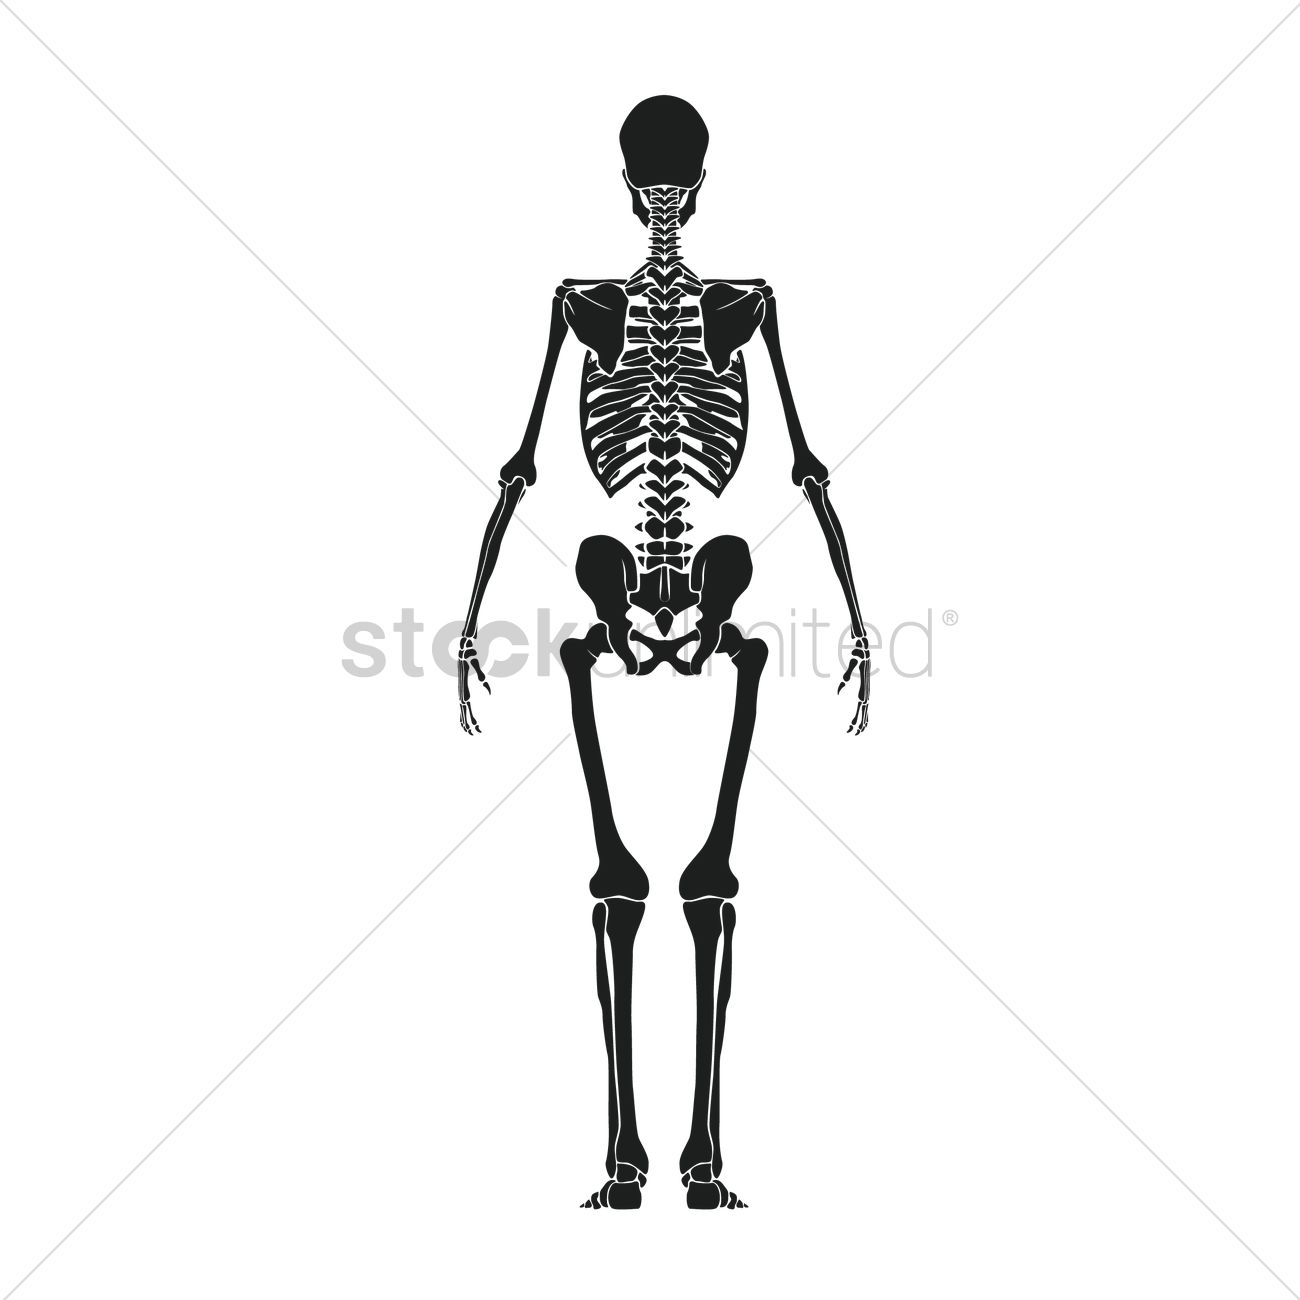 Back View Of Human Skeleton Vector Image 1516126 Stockunlimited